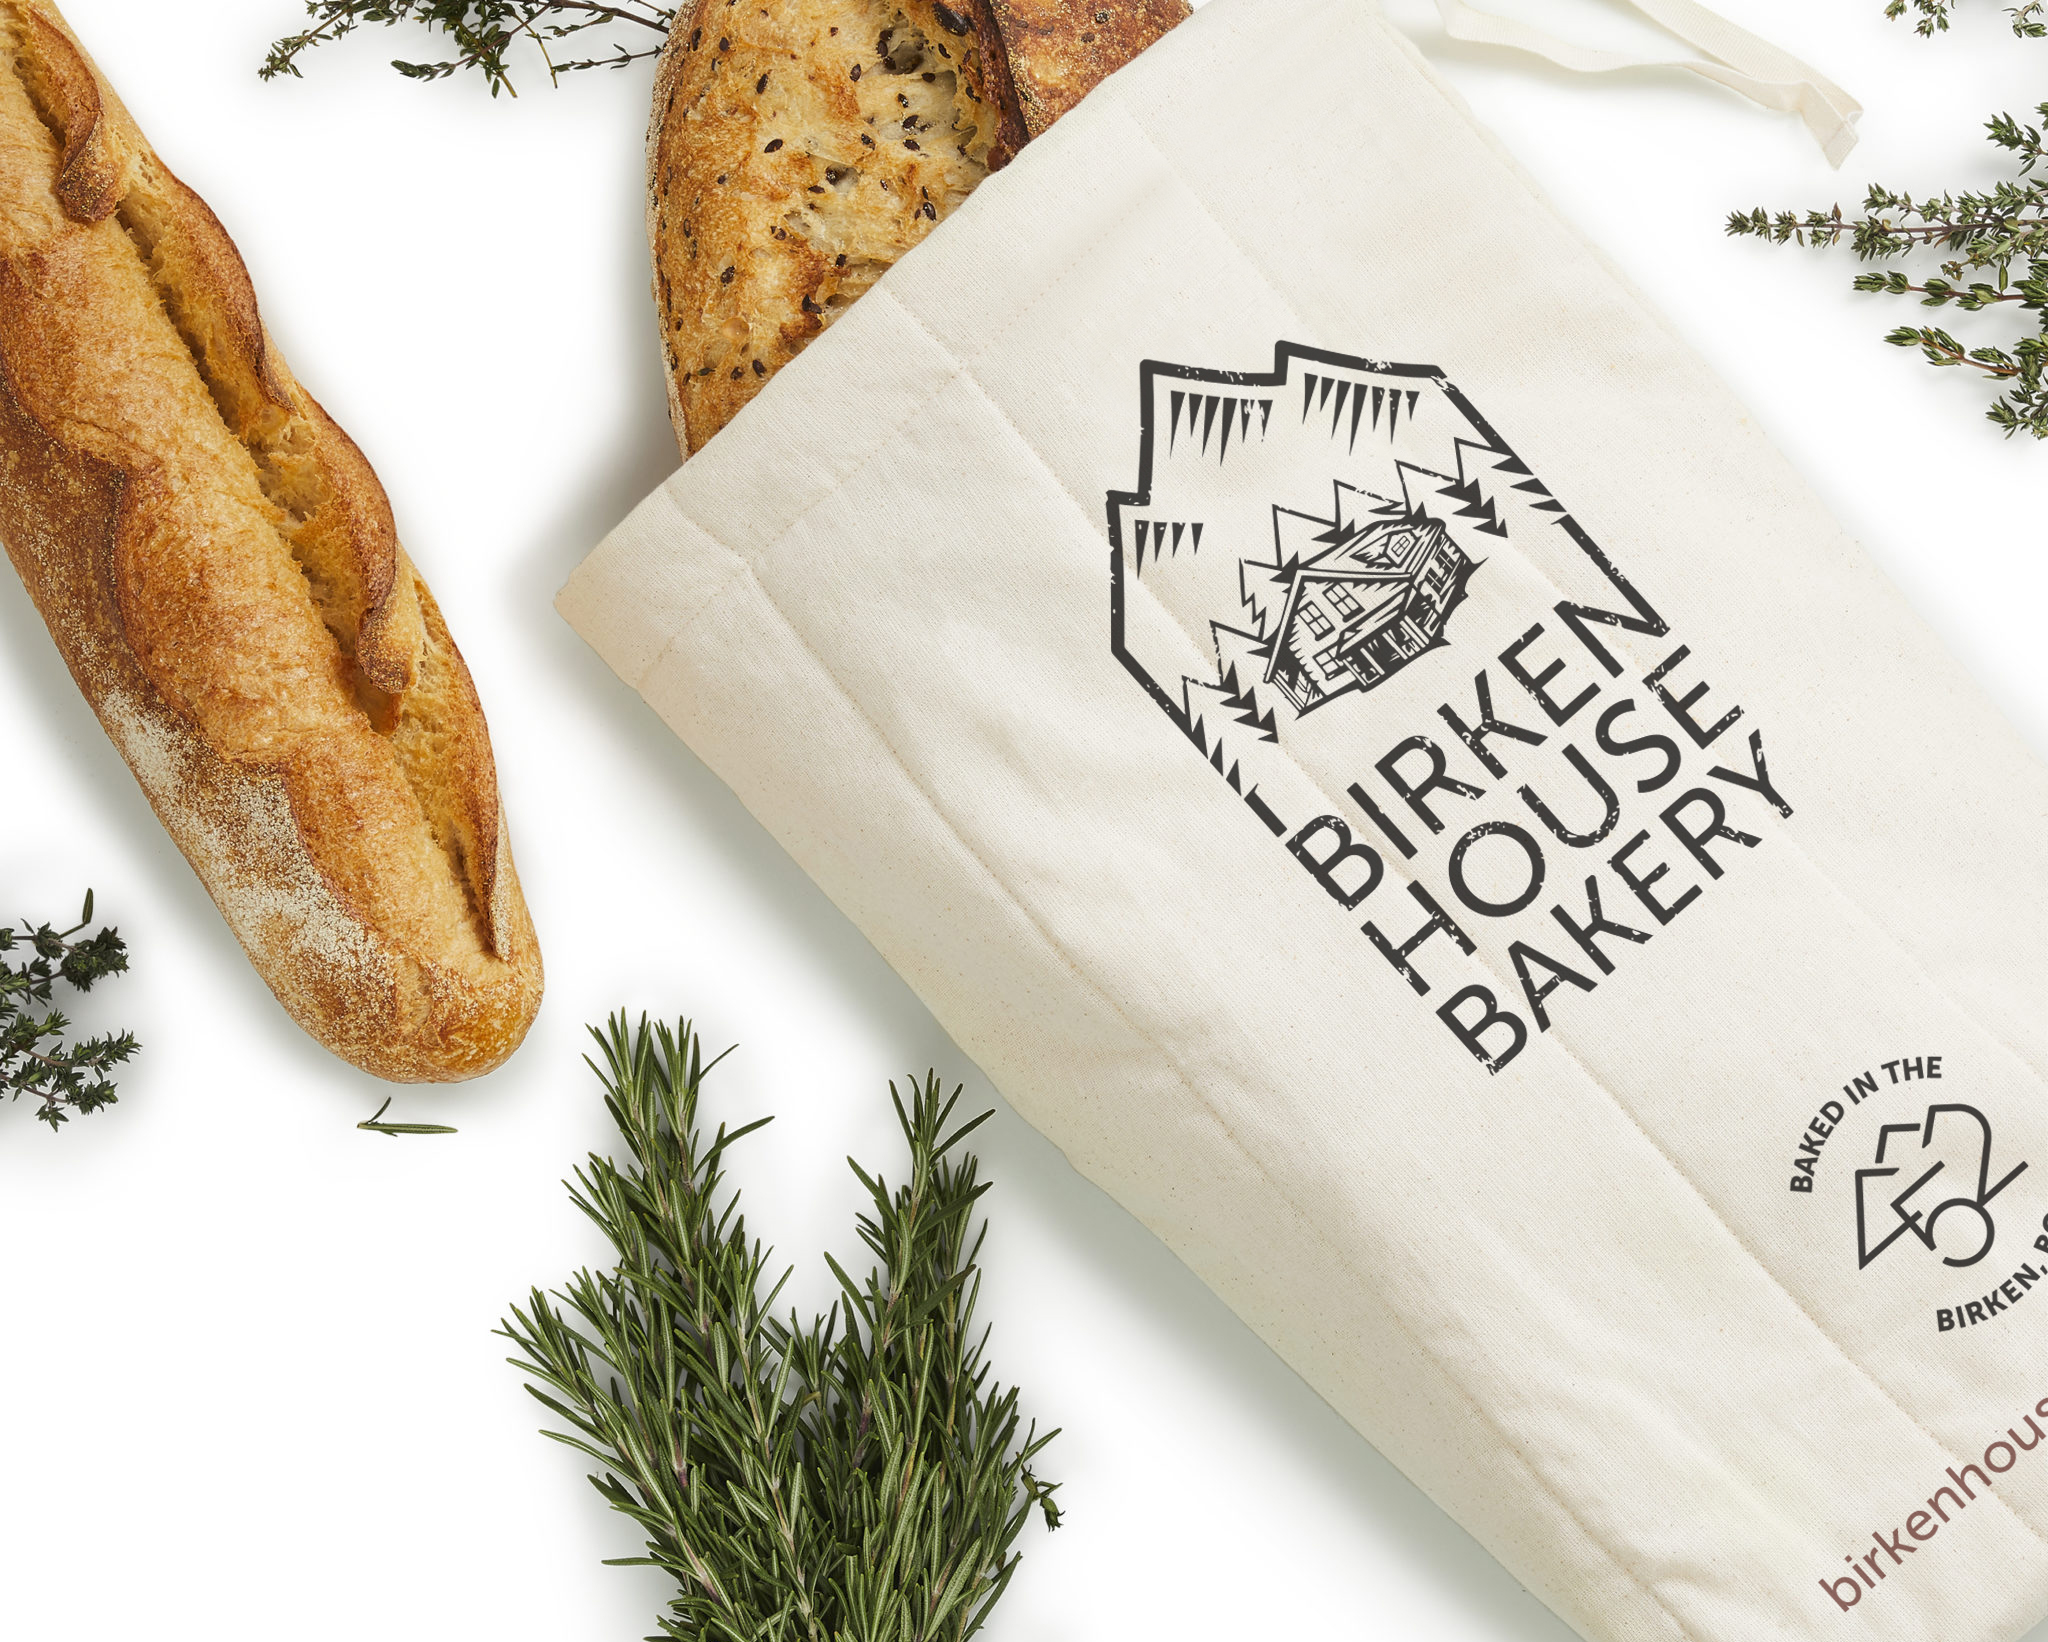 Birken-House-Bakery_Bread_In_Bag.jpg